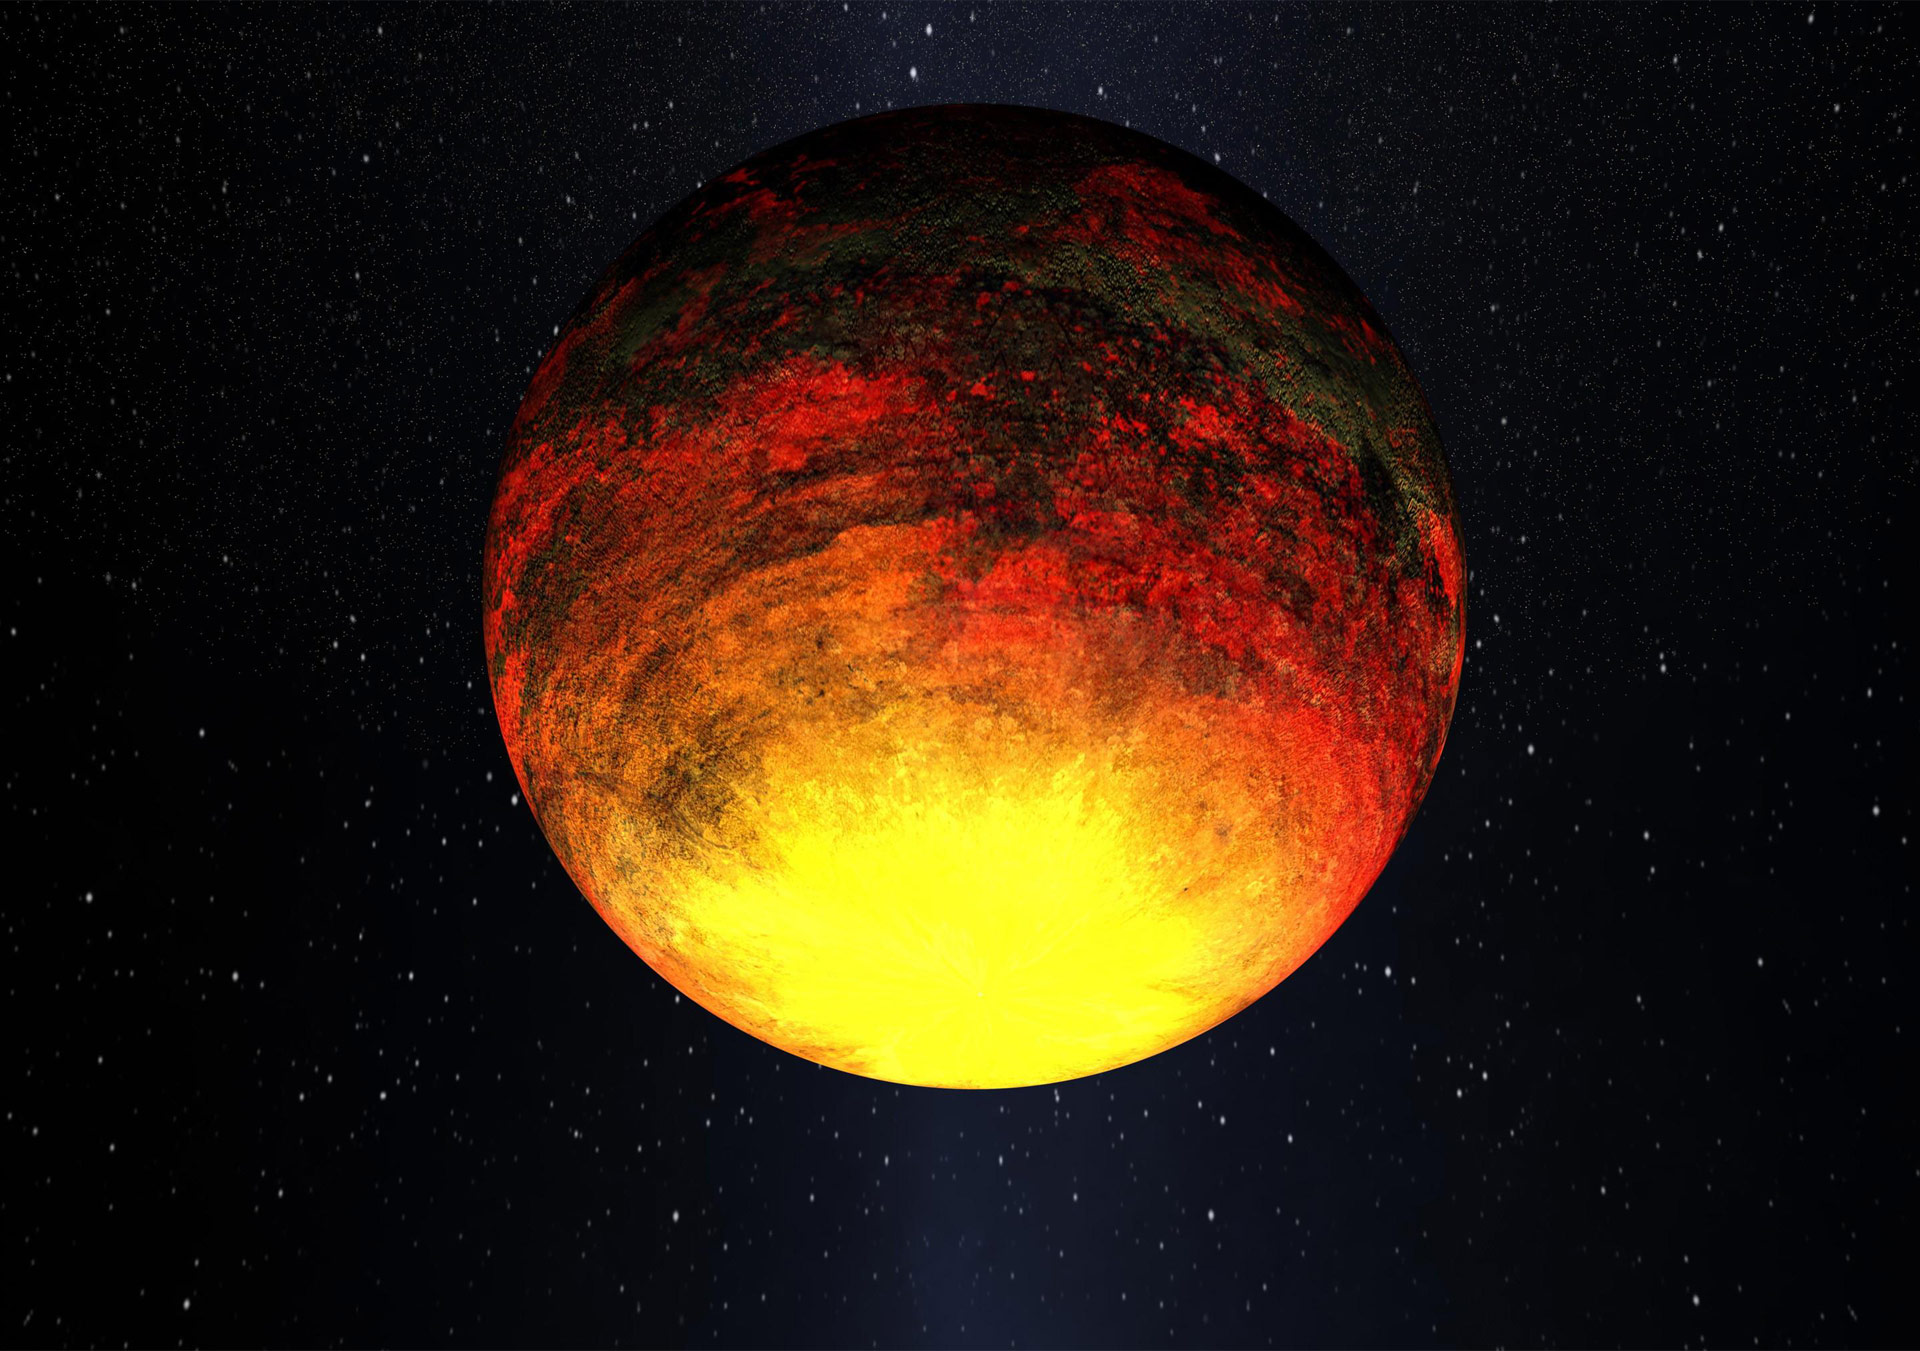 Researchers Propose a Method to Investigate Exoplanet Surfaces